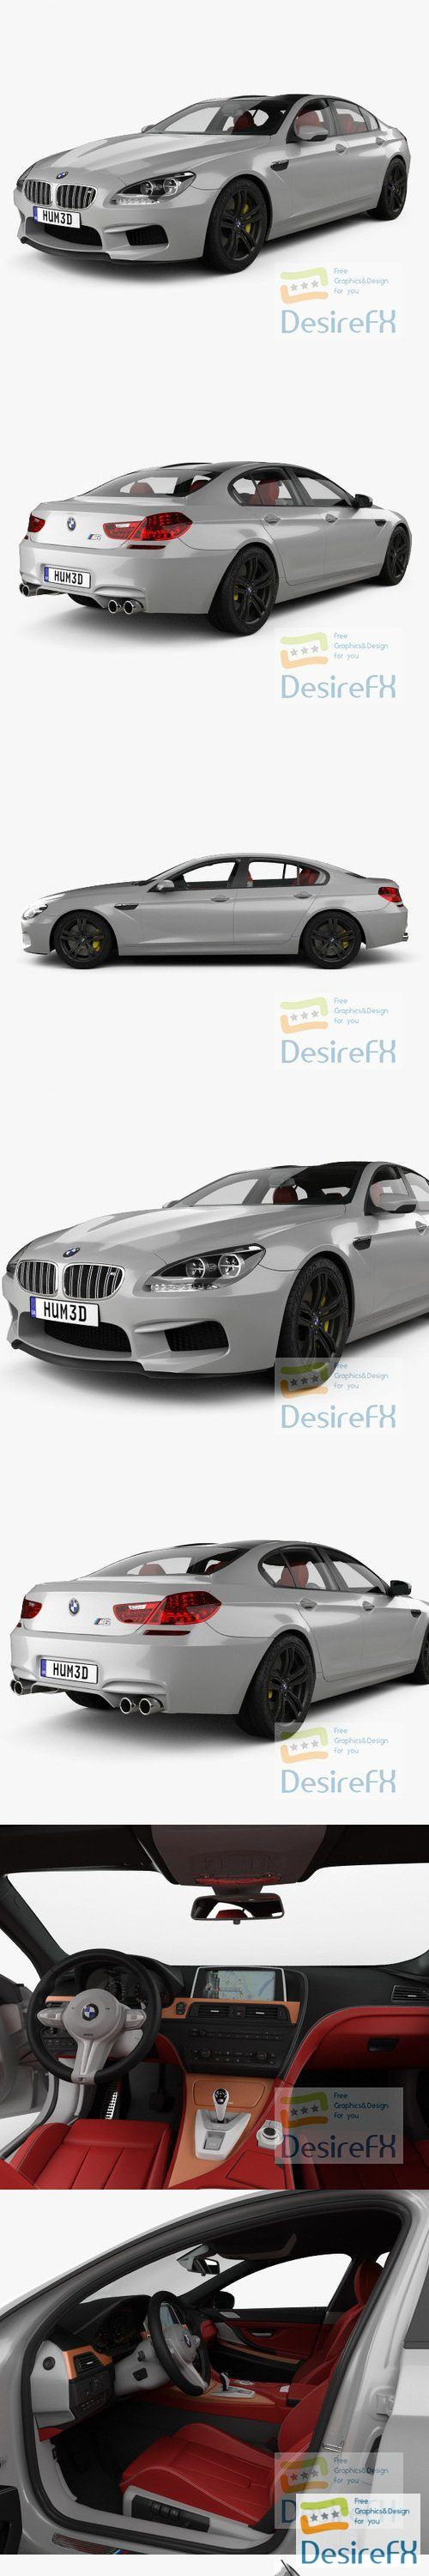 BMW M6 Gran Coupe with HQ interior 2013 3D Model